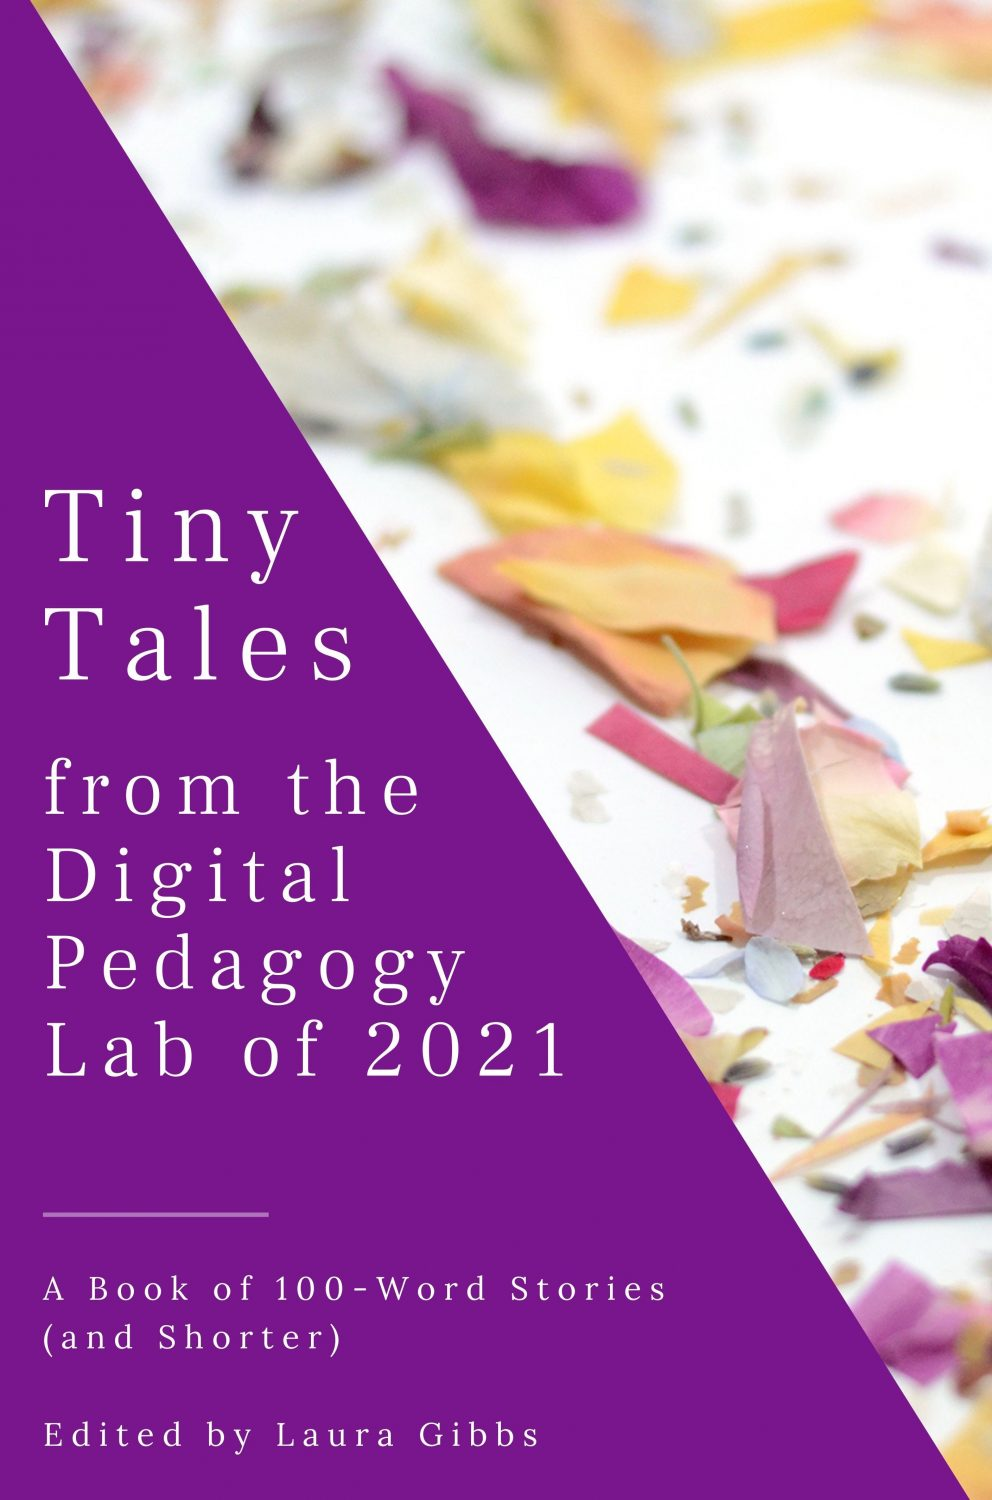 Cover image for Tiny Tales from the Digital Pedagogy Lab 2021